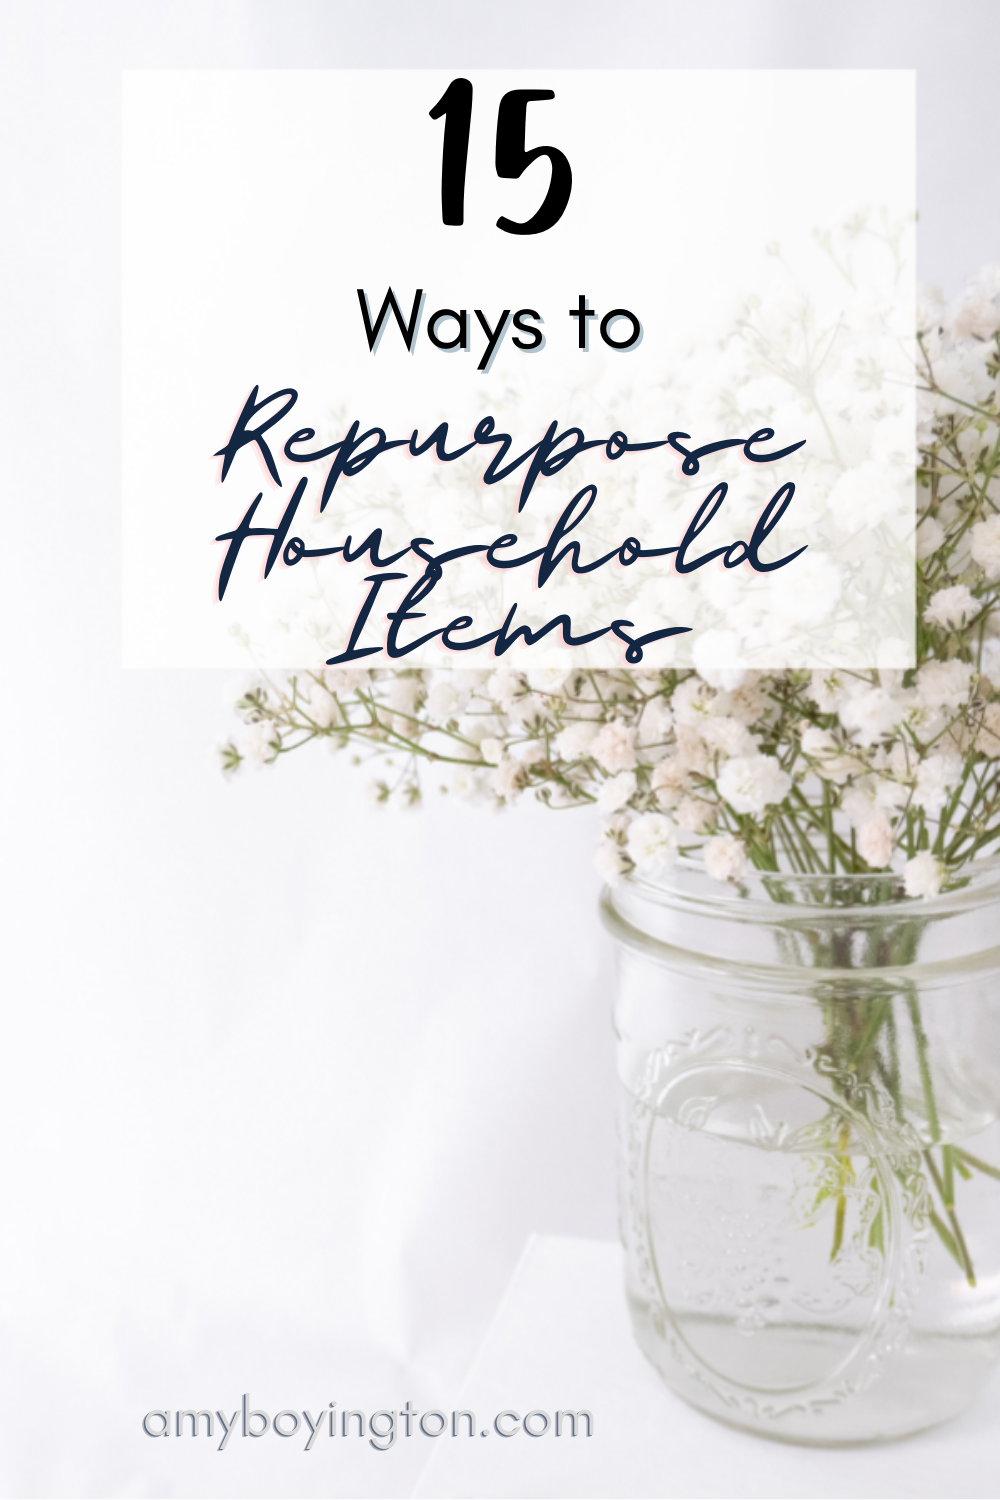 How to repurpose everyday household items, like books, jars, wine bottles, and dog crates.